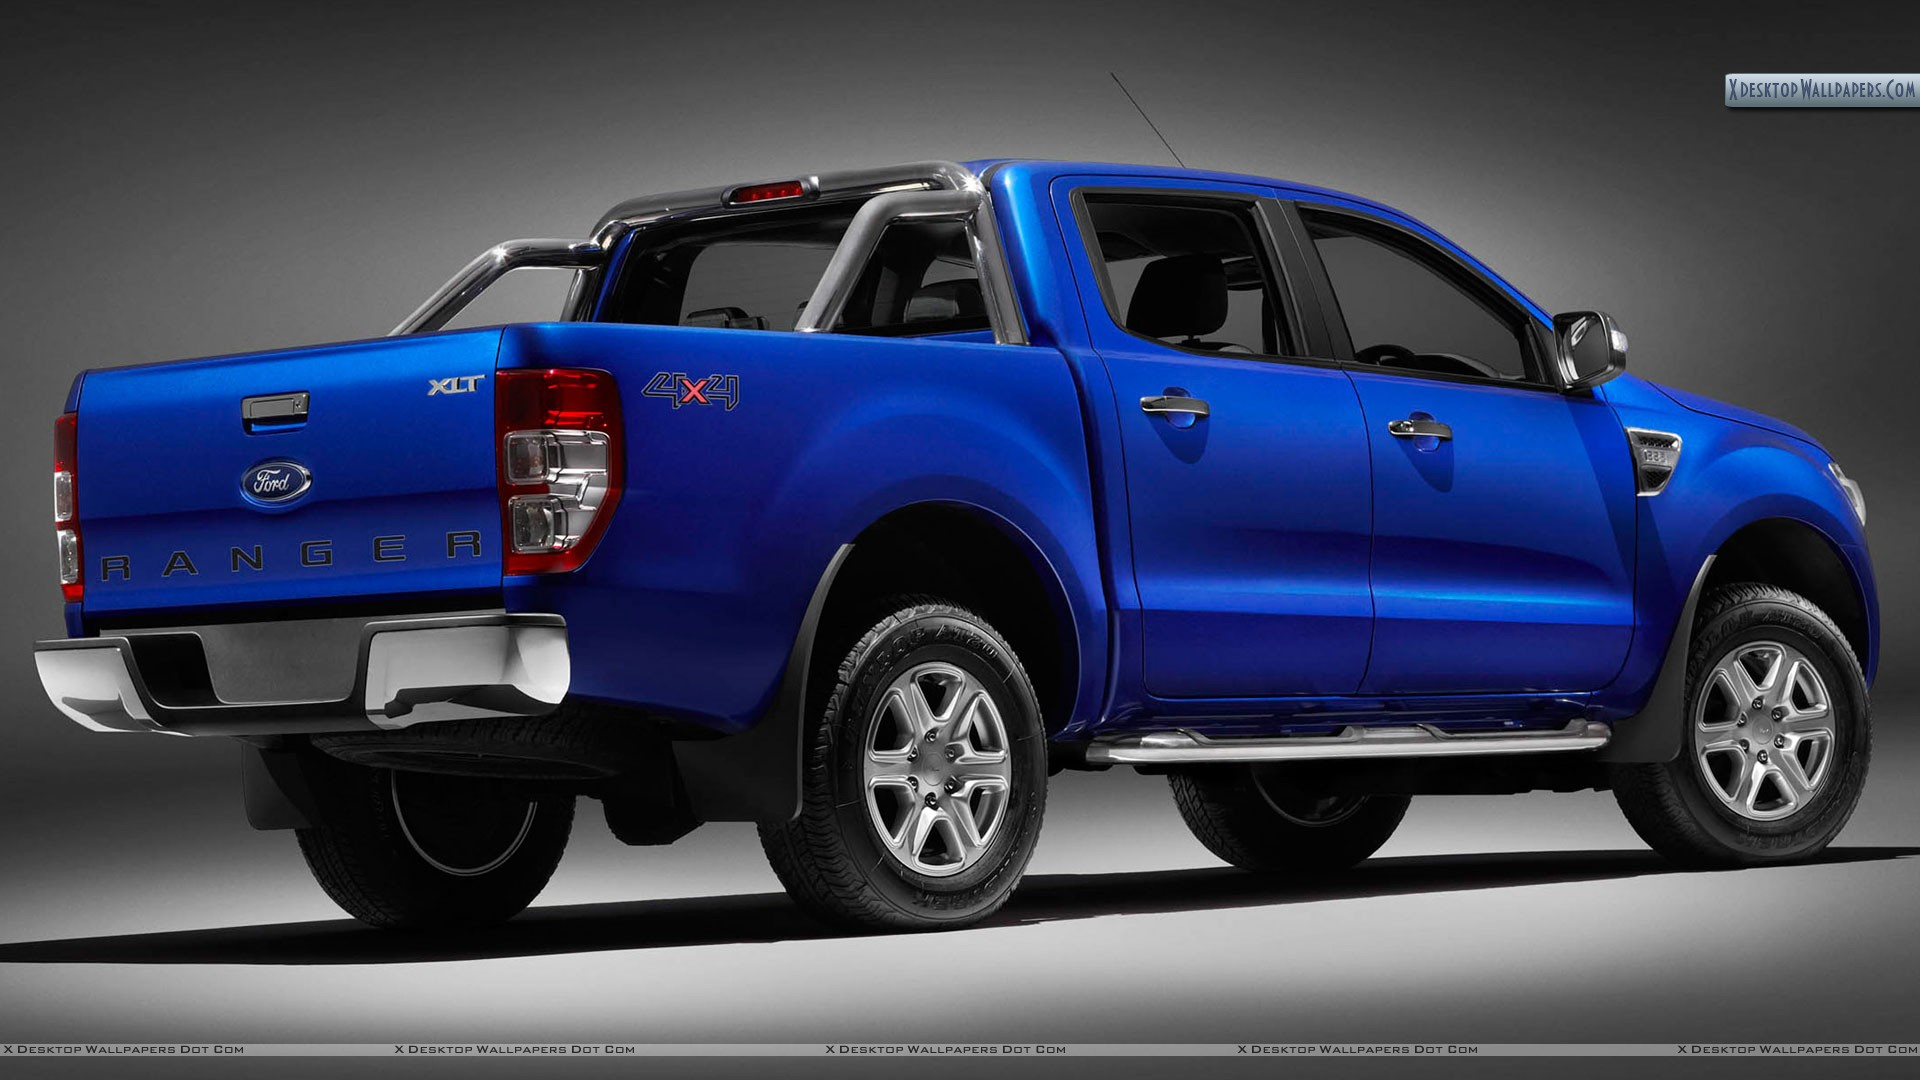 You are viewing wallpaper titled ford ranger wildtrak 2011